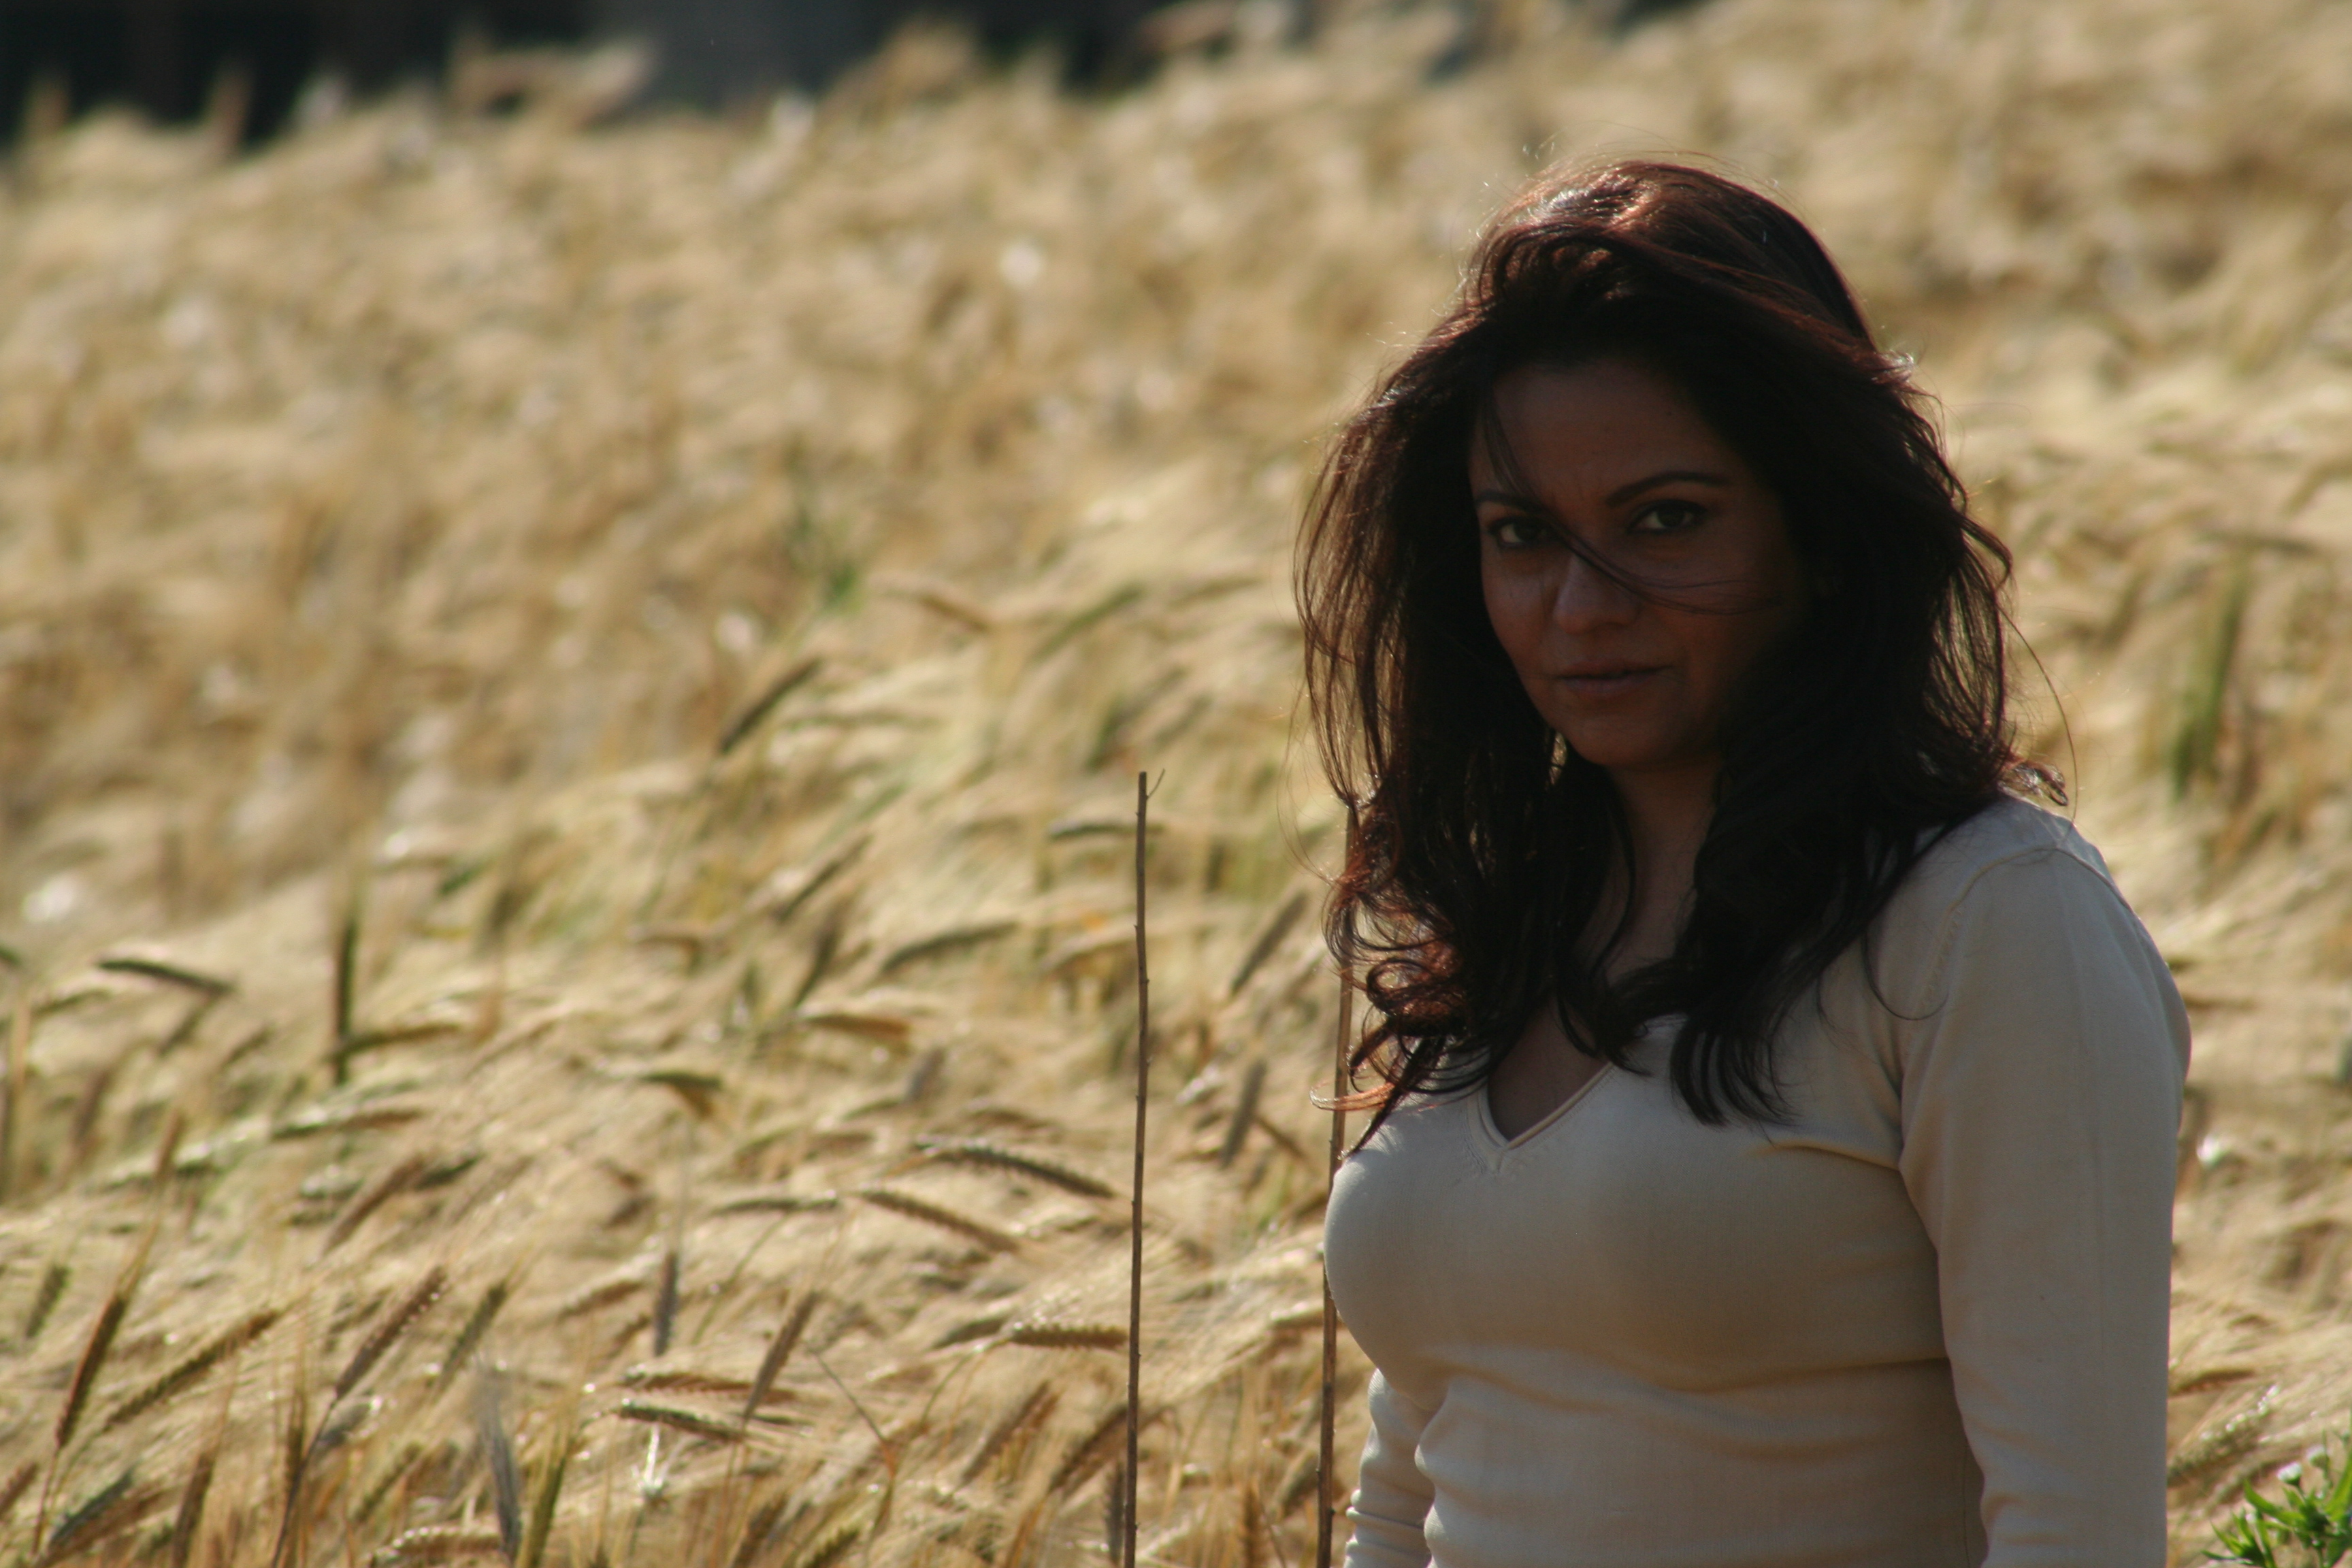 Anu Malhotra, Filmmaker on location 38